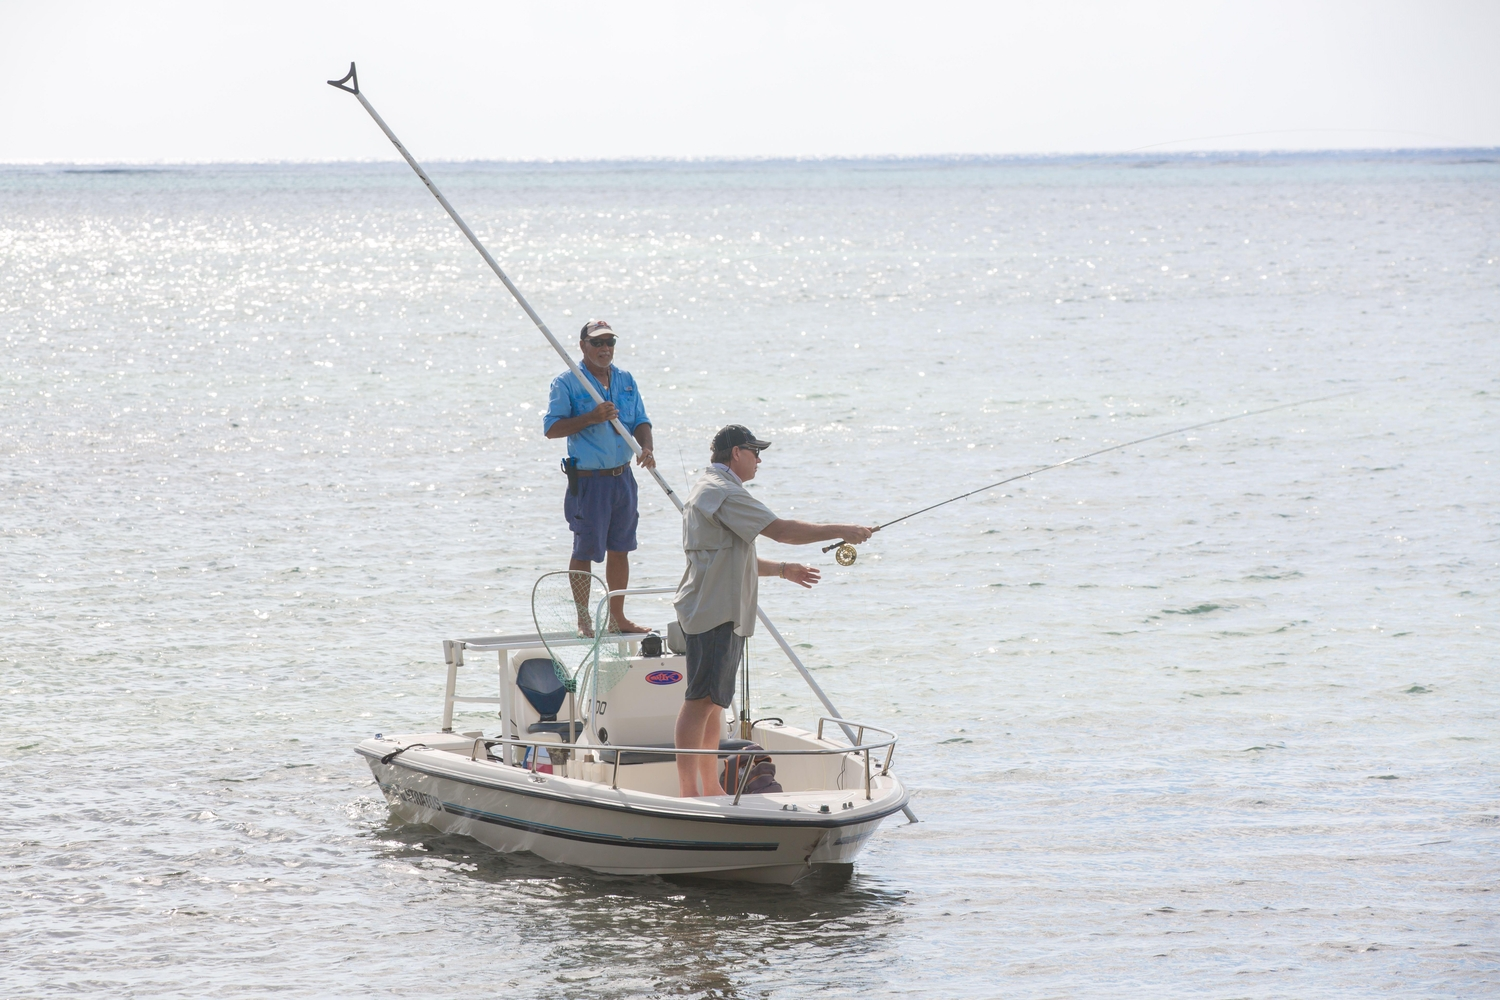 Two men fly fishing off small boat